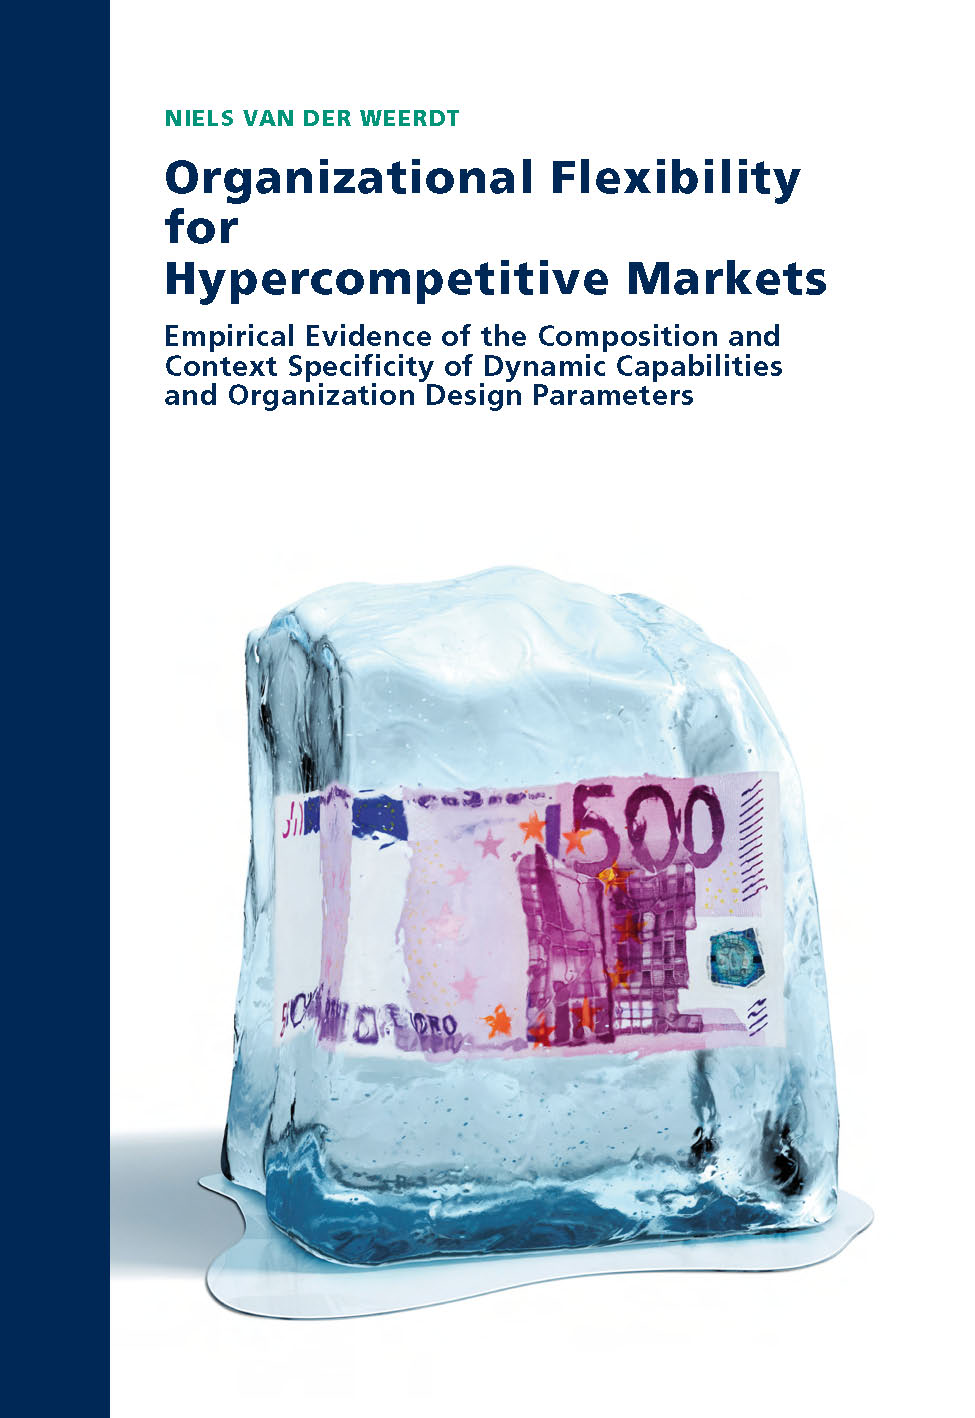 Organizational Flexibility for Hypercompetitive Markets